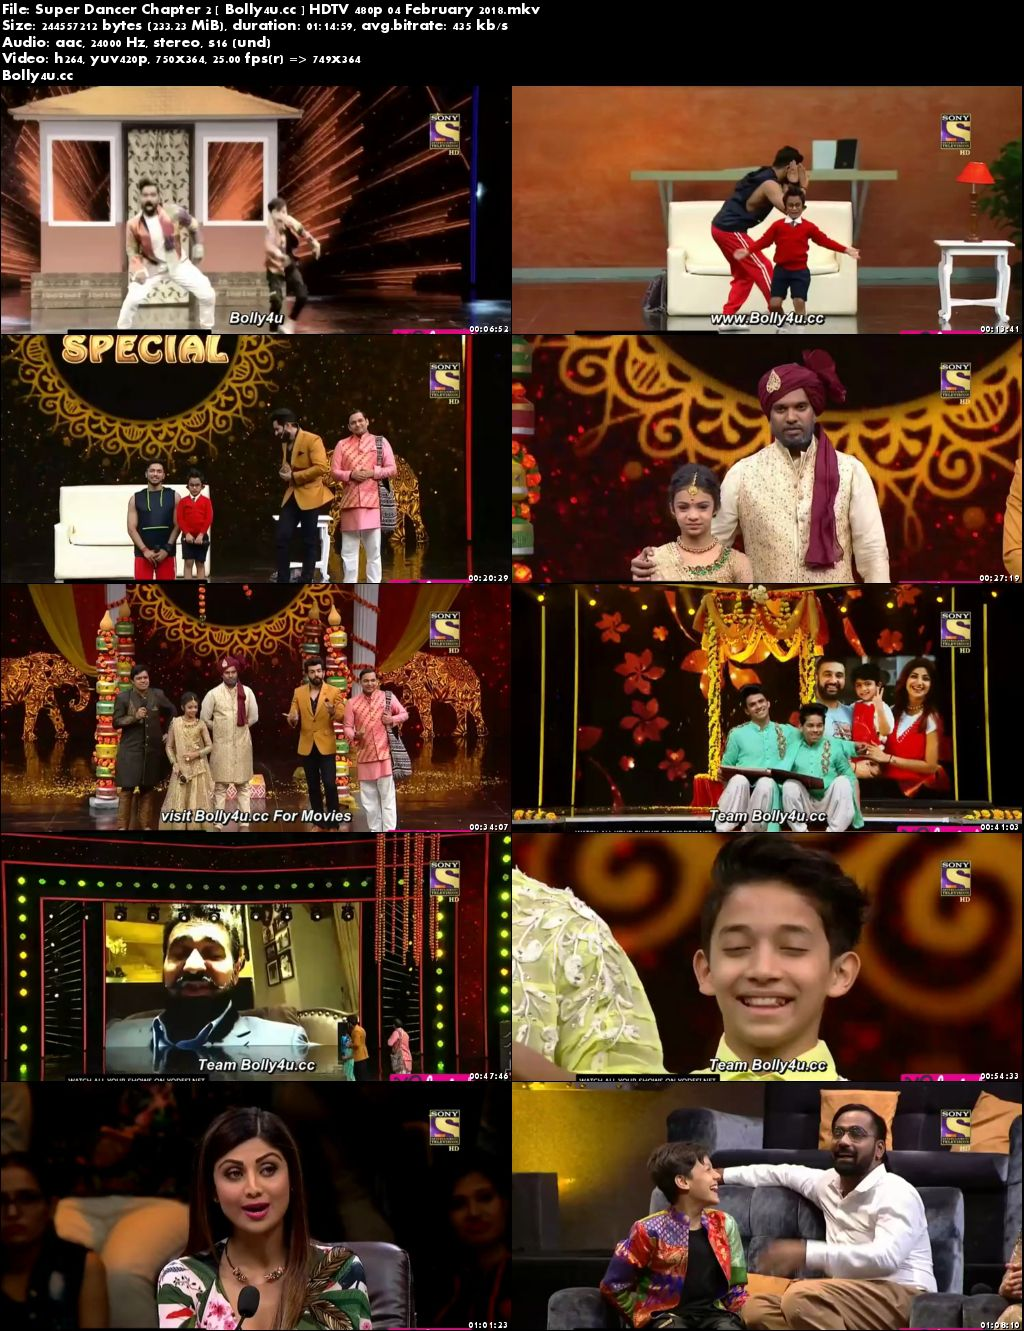 Super Dancer Chapter 2 HDTV 200MB 480p 04 February 2018 Download